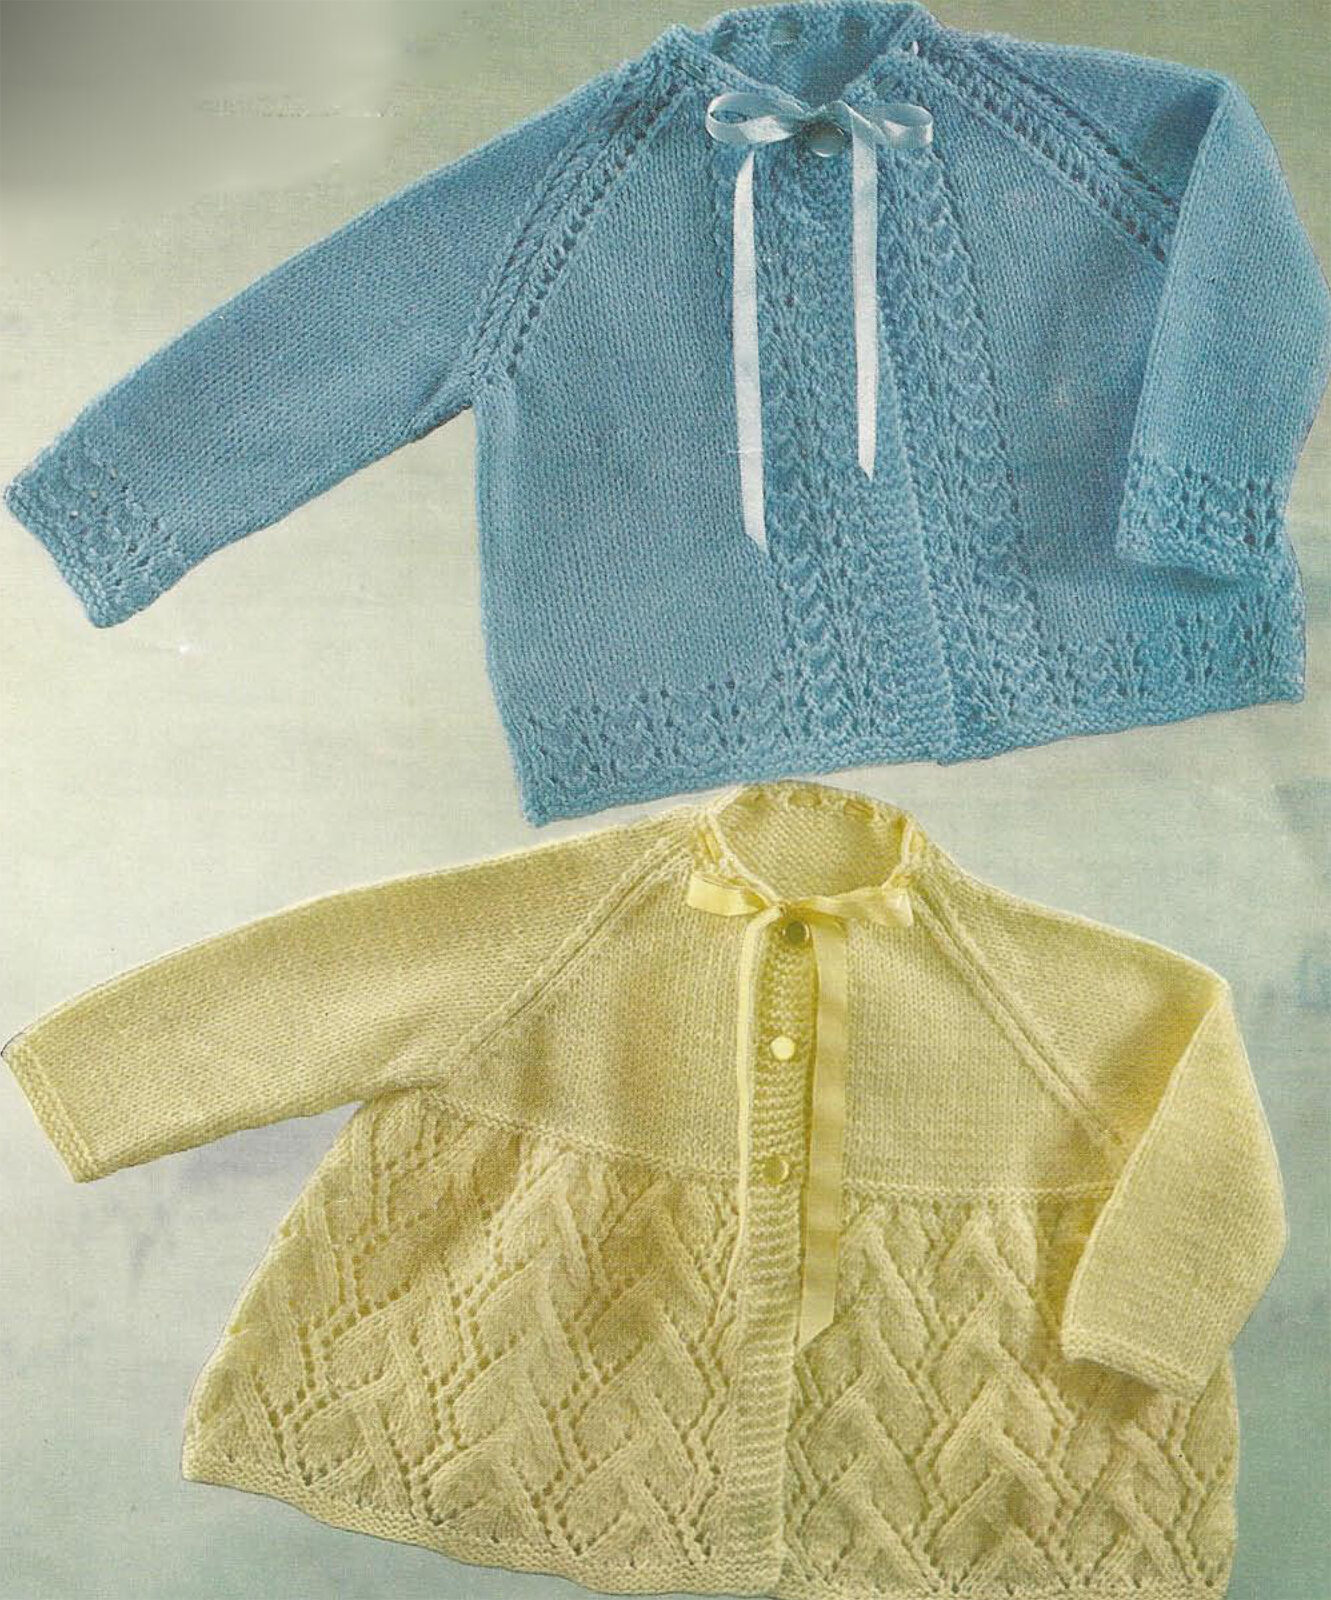 Knitting Pattern Baby Chest Sizes : Baby Matinee Coats Knitting Pattern 18 To 20 Inch Chest (134)   ?0.99 - PicCl...